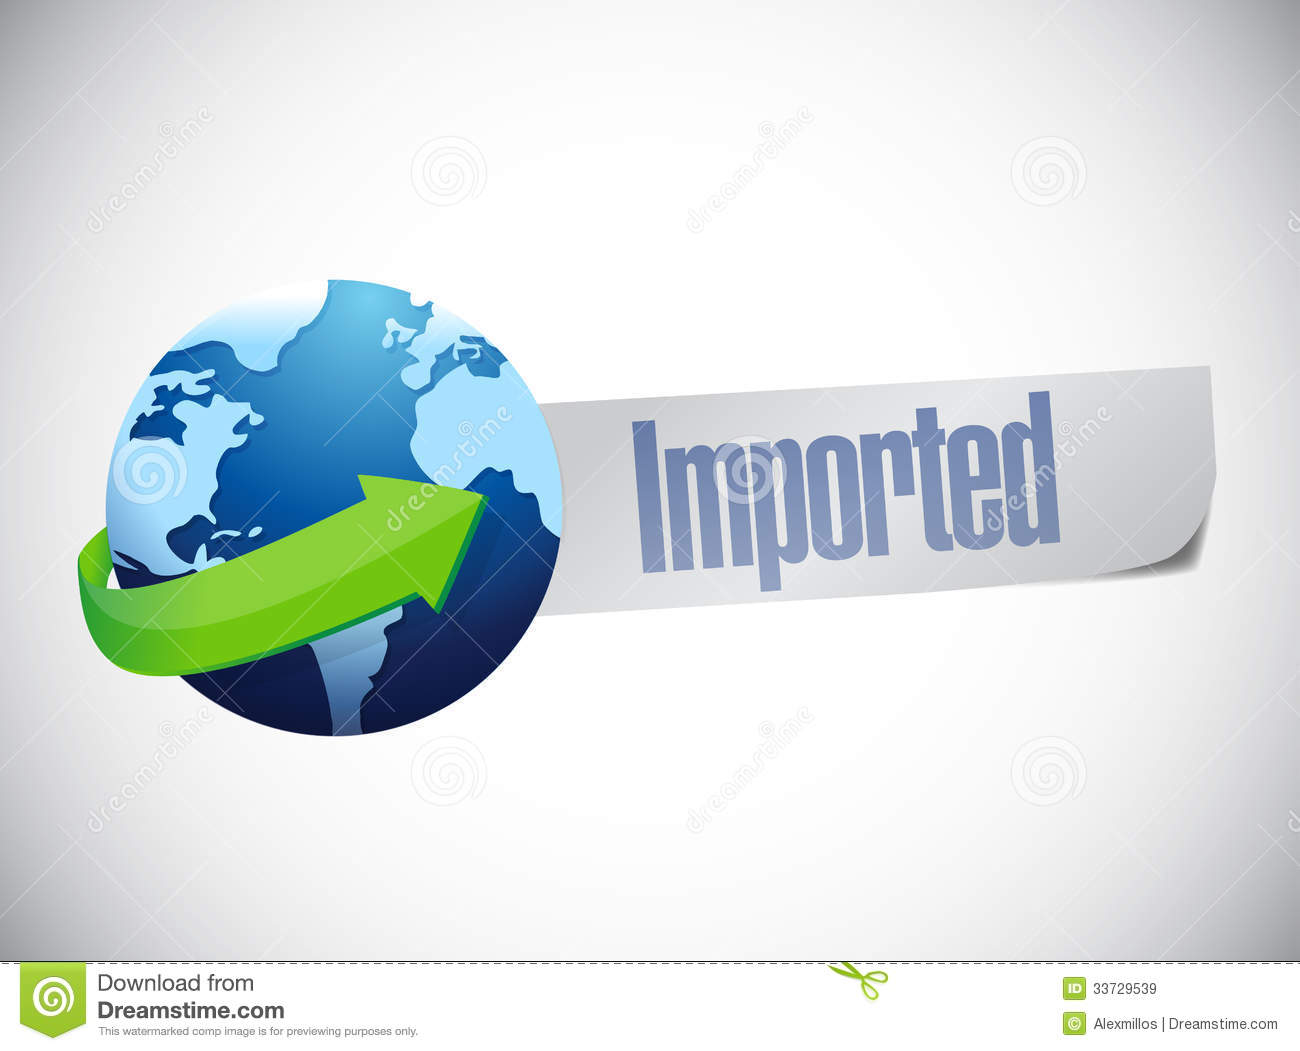 Export and import business plan